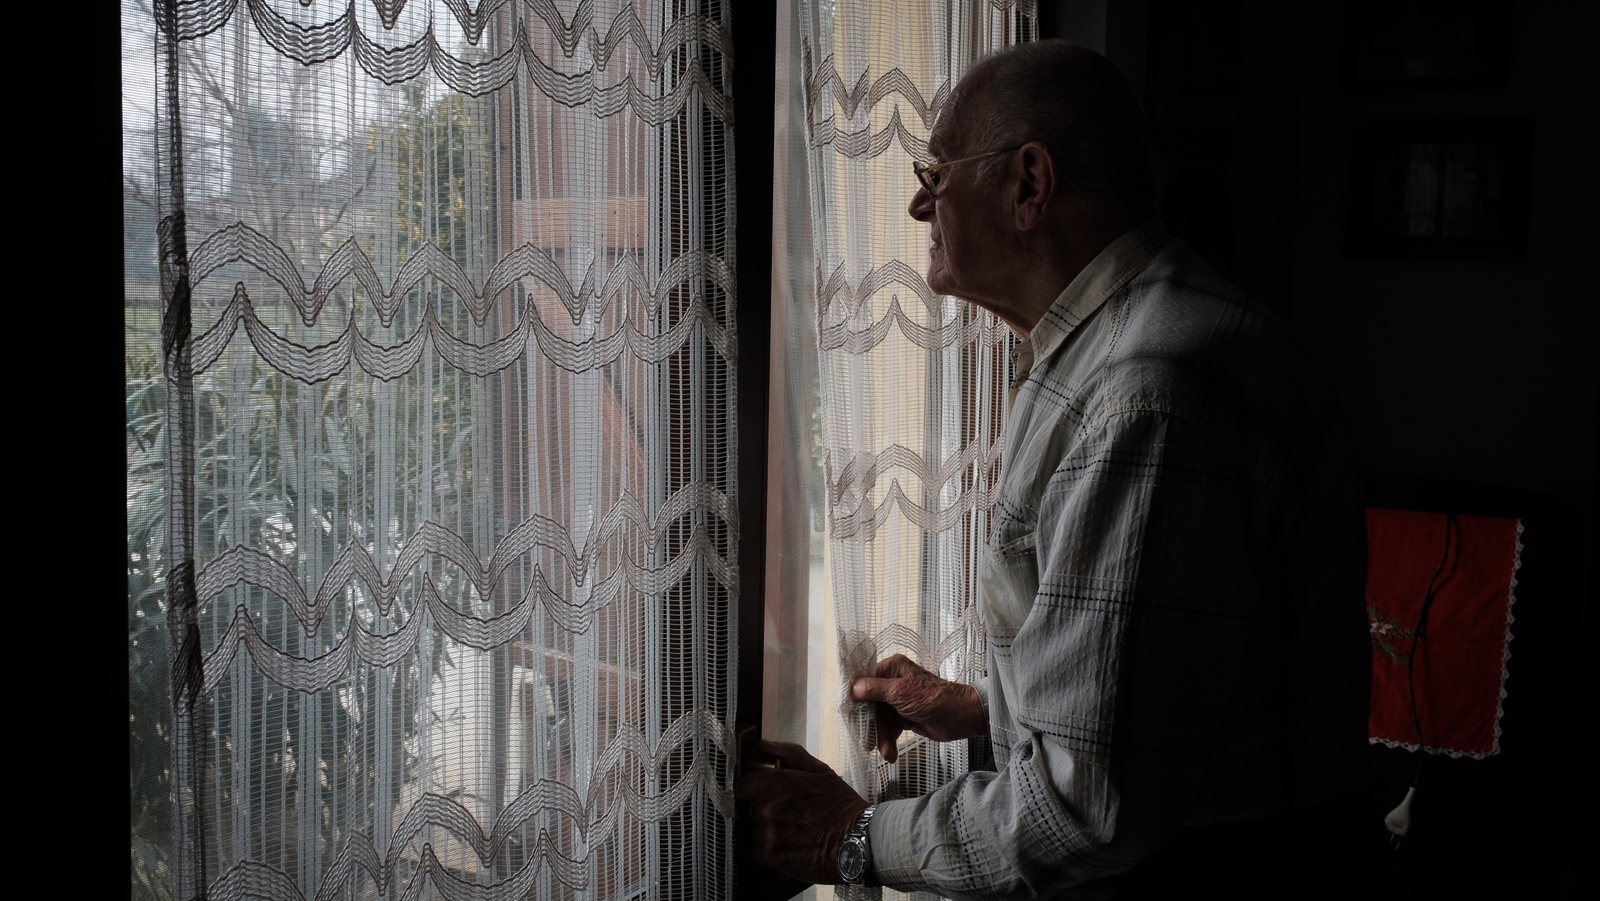 Image - Marzio's grandfather looks out at an empty street